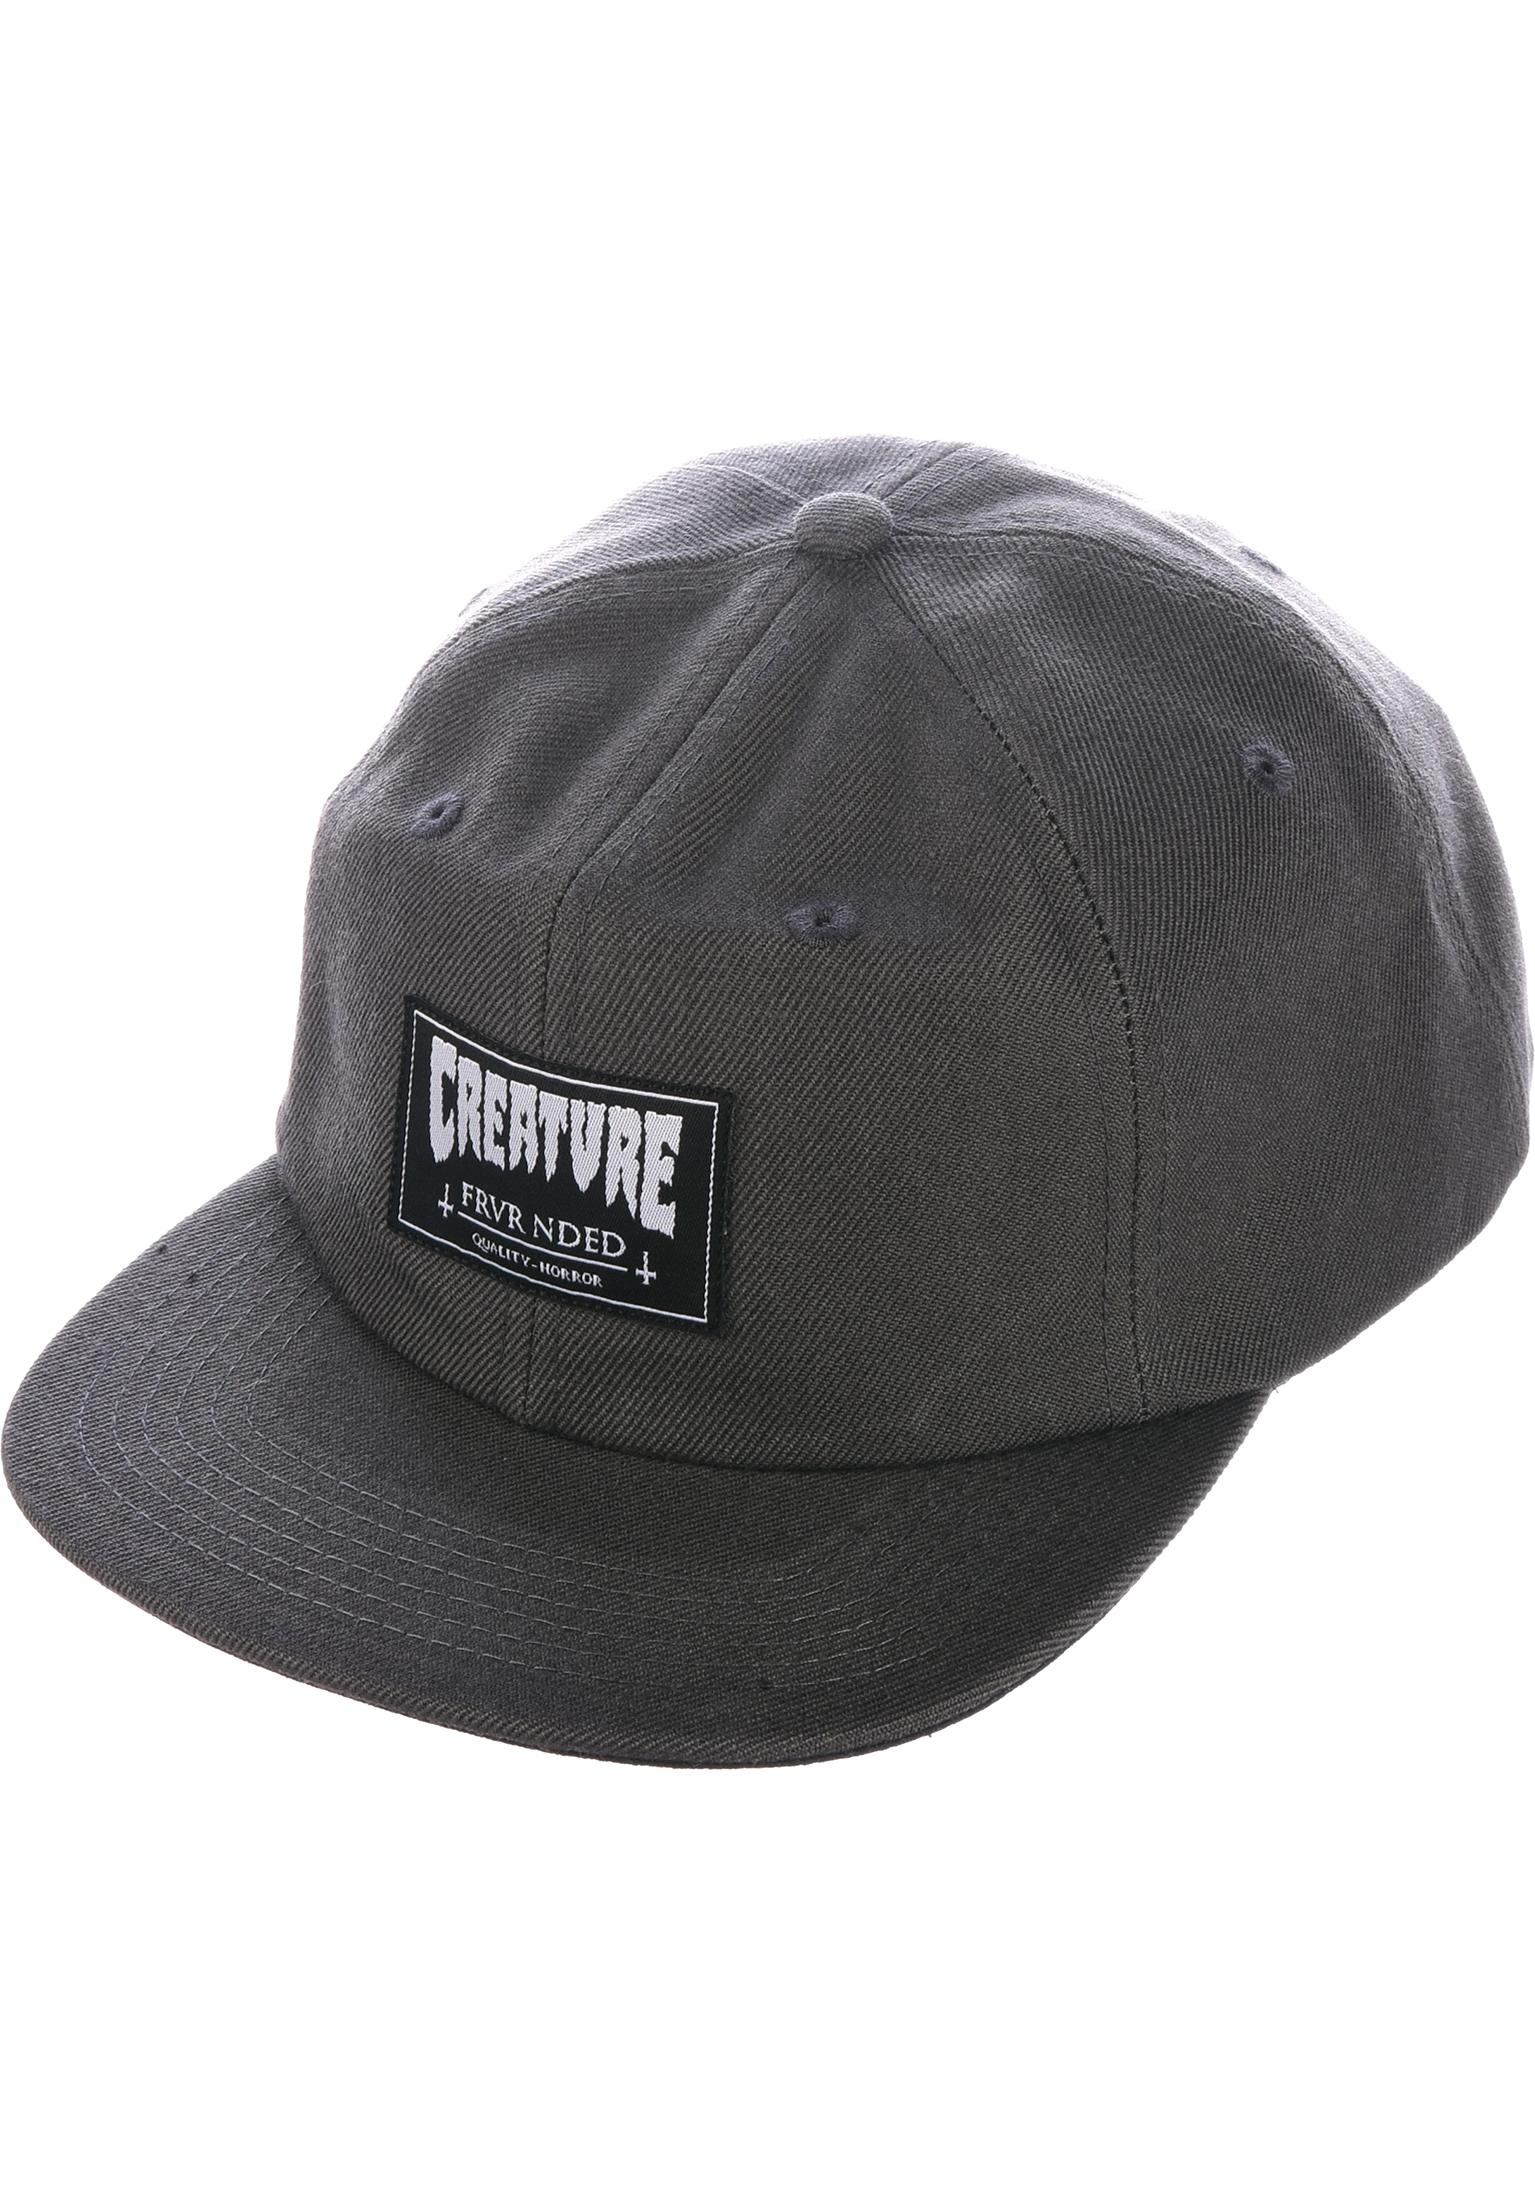 Frvr Nded Snapback Creature Caps in grey for Men  23e242e4ea9